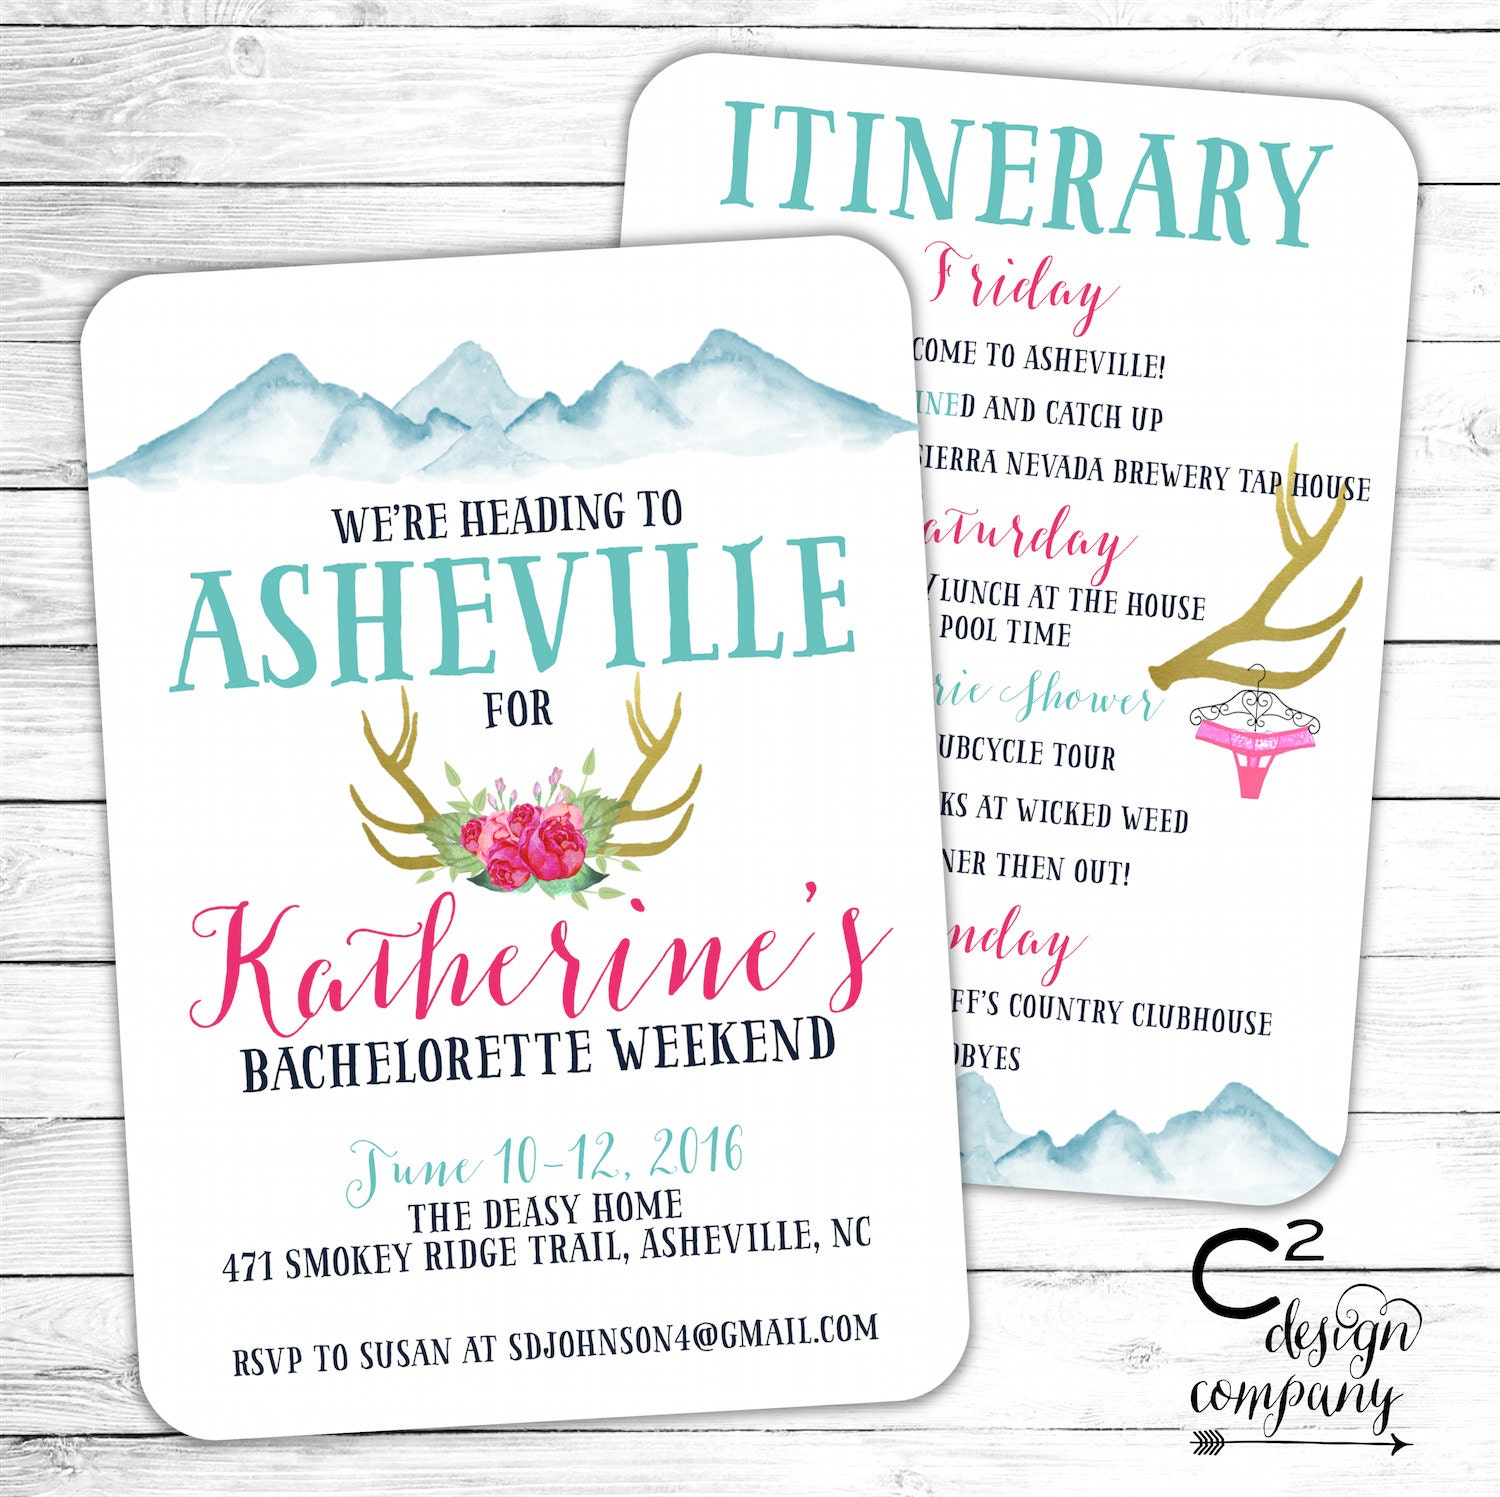 Asheville Bachelorette Party Invitation with Itinerary